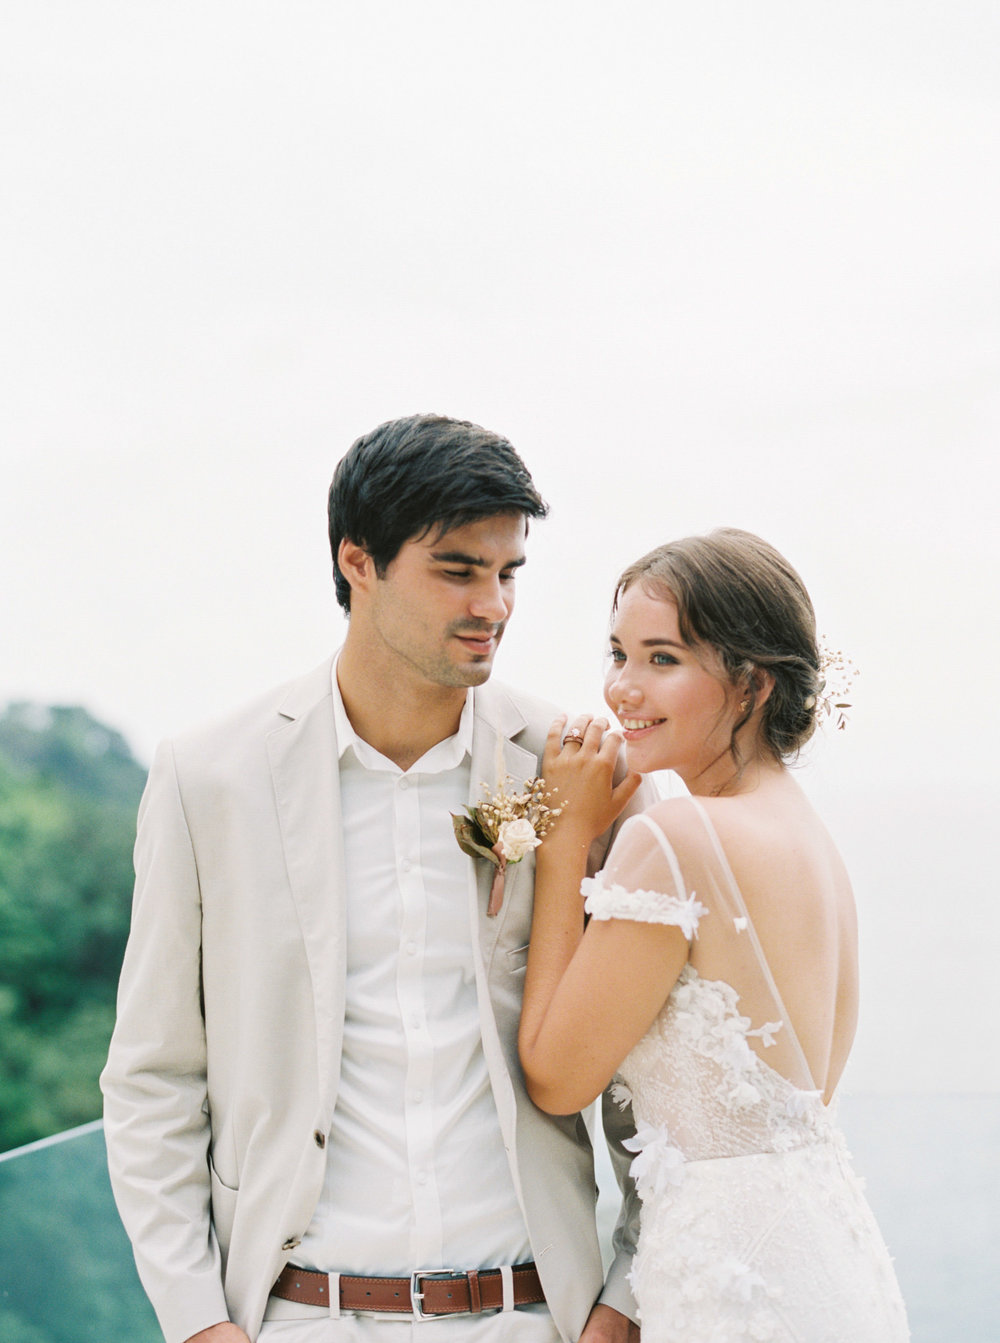 Destination Wedding Phuket Thailand Fine Art Film Photographer Sheri McMahon-00070-70.jpg